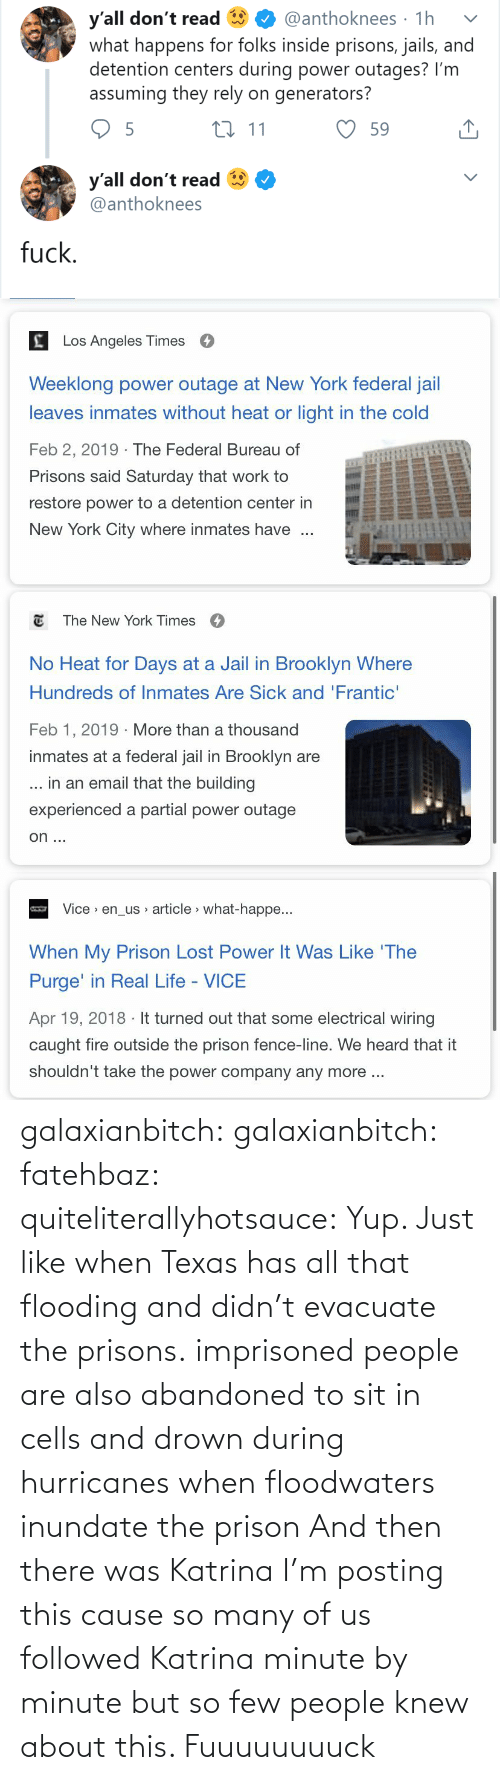 Texas: y'all don't read  what happens for folks inside prisons, jails, and  detention centers during power outages? I'm  assuming they rely on generators?  @anthoknees · 1h  27 11  59  y'all don't read  @anthoknees  fuck.   Los Angeles Times  Weeklong power outage at New York federal jail  leaves inmates without heat or light in the cold  Feb 2, 2019 · The Federal Bureau of  Prisons said Saturday that work to  restore power to a detention center in  New York City where inmates have   E The New York Times  O  No Heat for Days at a Jail in Brooklyn Where  Hundreds of Inmates Are Sick and 'Frantic'  Feb 1, 2019 · More than a thousand  inmates at a federal jail in Brooklyn are  ... in an email that the building  experienced a partial power outage  on ...   Vice > en_us article > what-happe...  When My Prison Lost Power It Was Like 'The  Purge' in Real Life - VICE  Apr 19, 2018 · It turned out that some electrical wiring  caught fire outside the prison fence-line. We heard that it  shouldn't take the power company any more .. galaxianbitch: galaxianbitch:   fatehbaz:  quiteliterallyhotsauce:   Yup. Just like when Texas has all that flooding and didn't evacuate the prisons.   imprisoned people are also abandoned to sit in cells and drown during hurricanes when floodwaters inundate the prison   And then there was Katrina        I'm posting this cause so many of us followed Katrina minute by minute but so few people knew about this.    Fuuuuuuuuck